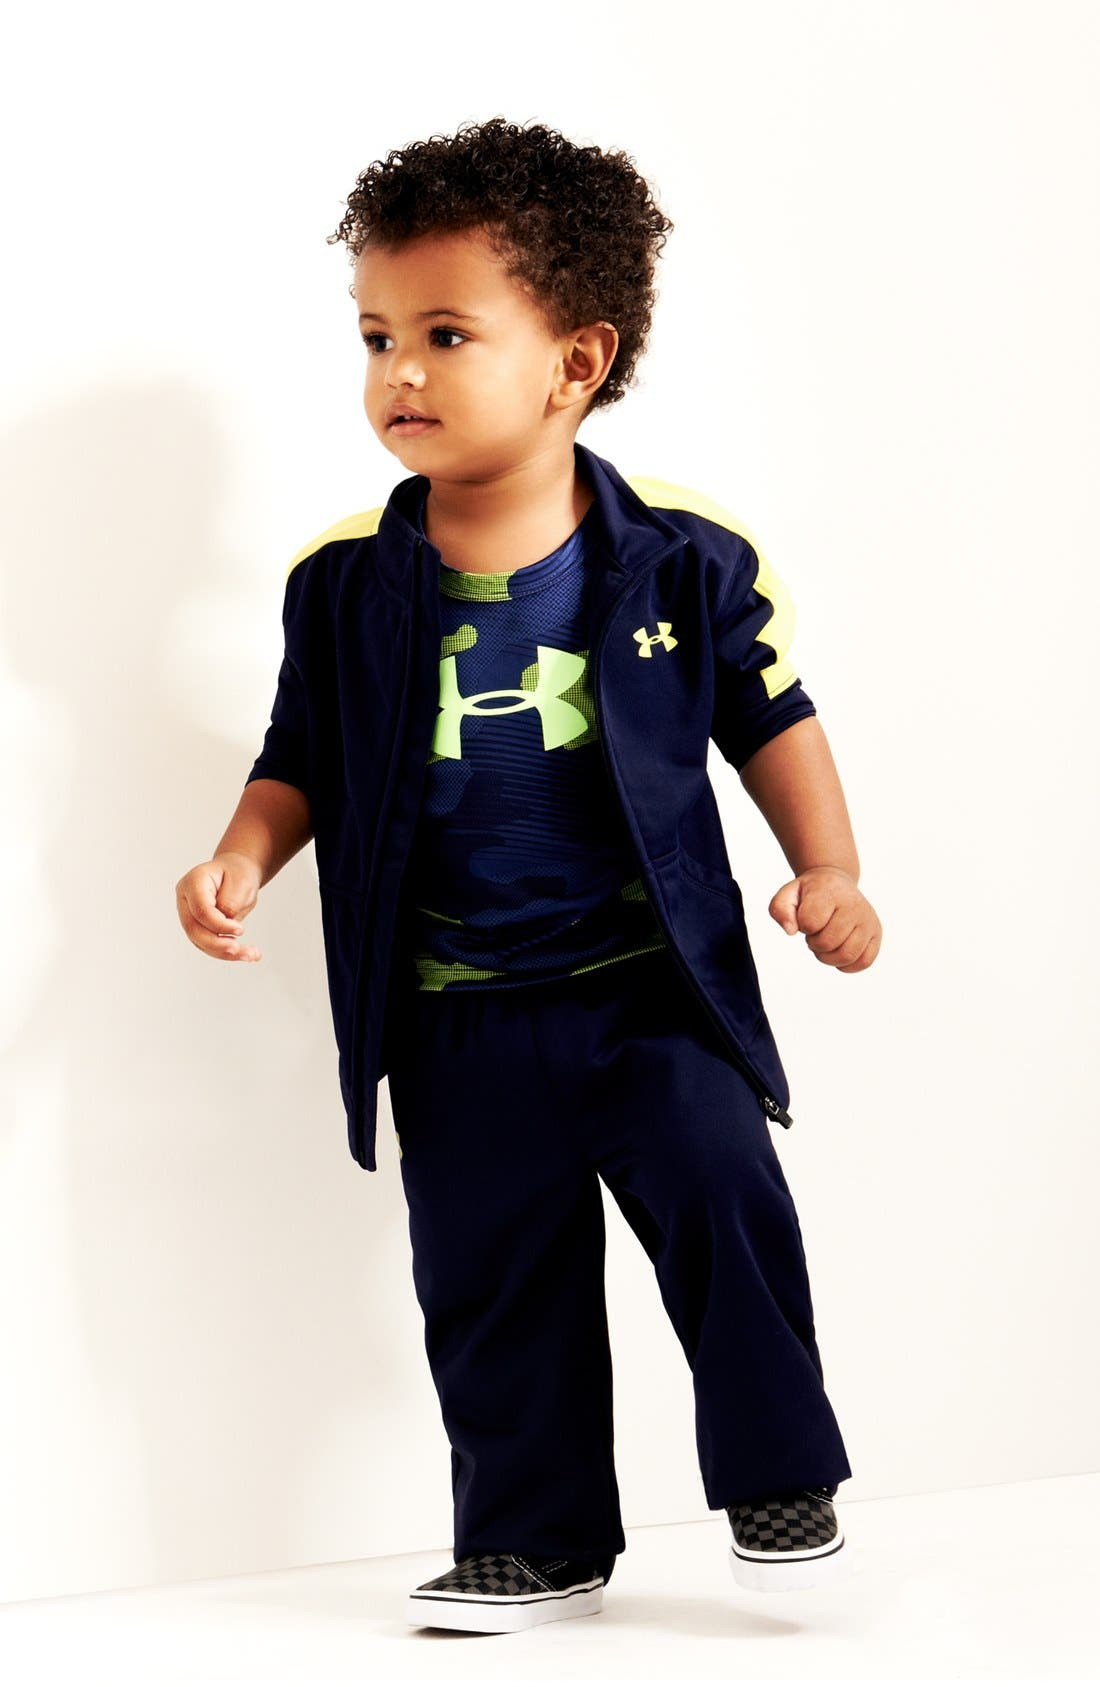 Main Image - Under Armour Jacket & Pants & T-Shirt (Baby Boys)